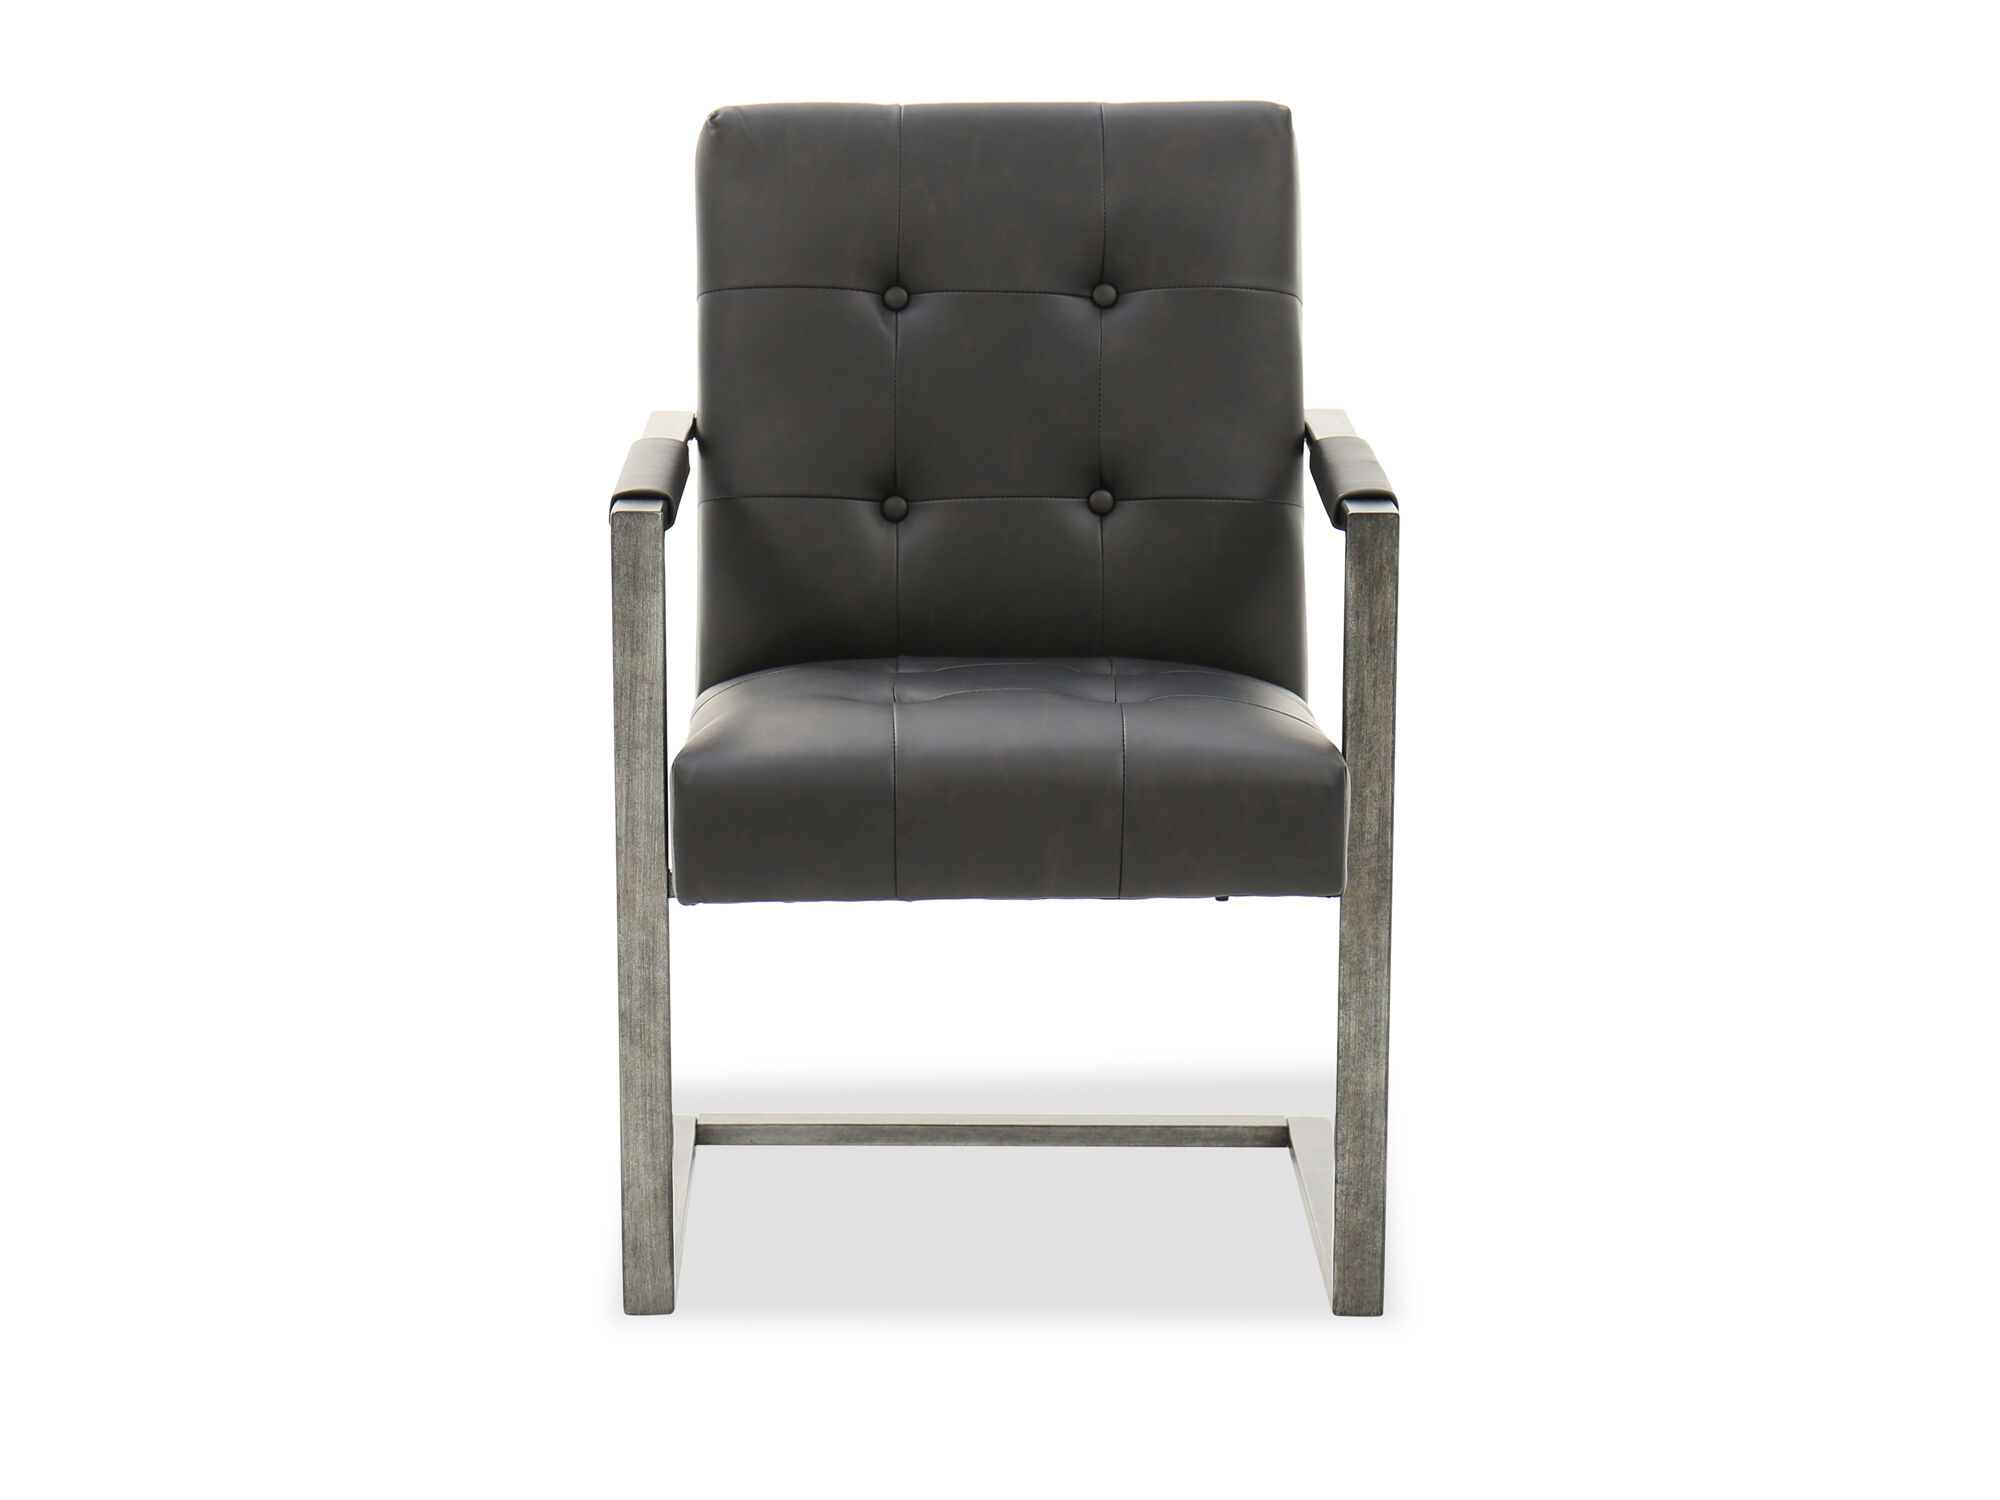 tufted desk chair the outlet portland button in blackened gunmetal mathis brothers furniture